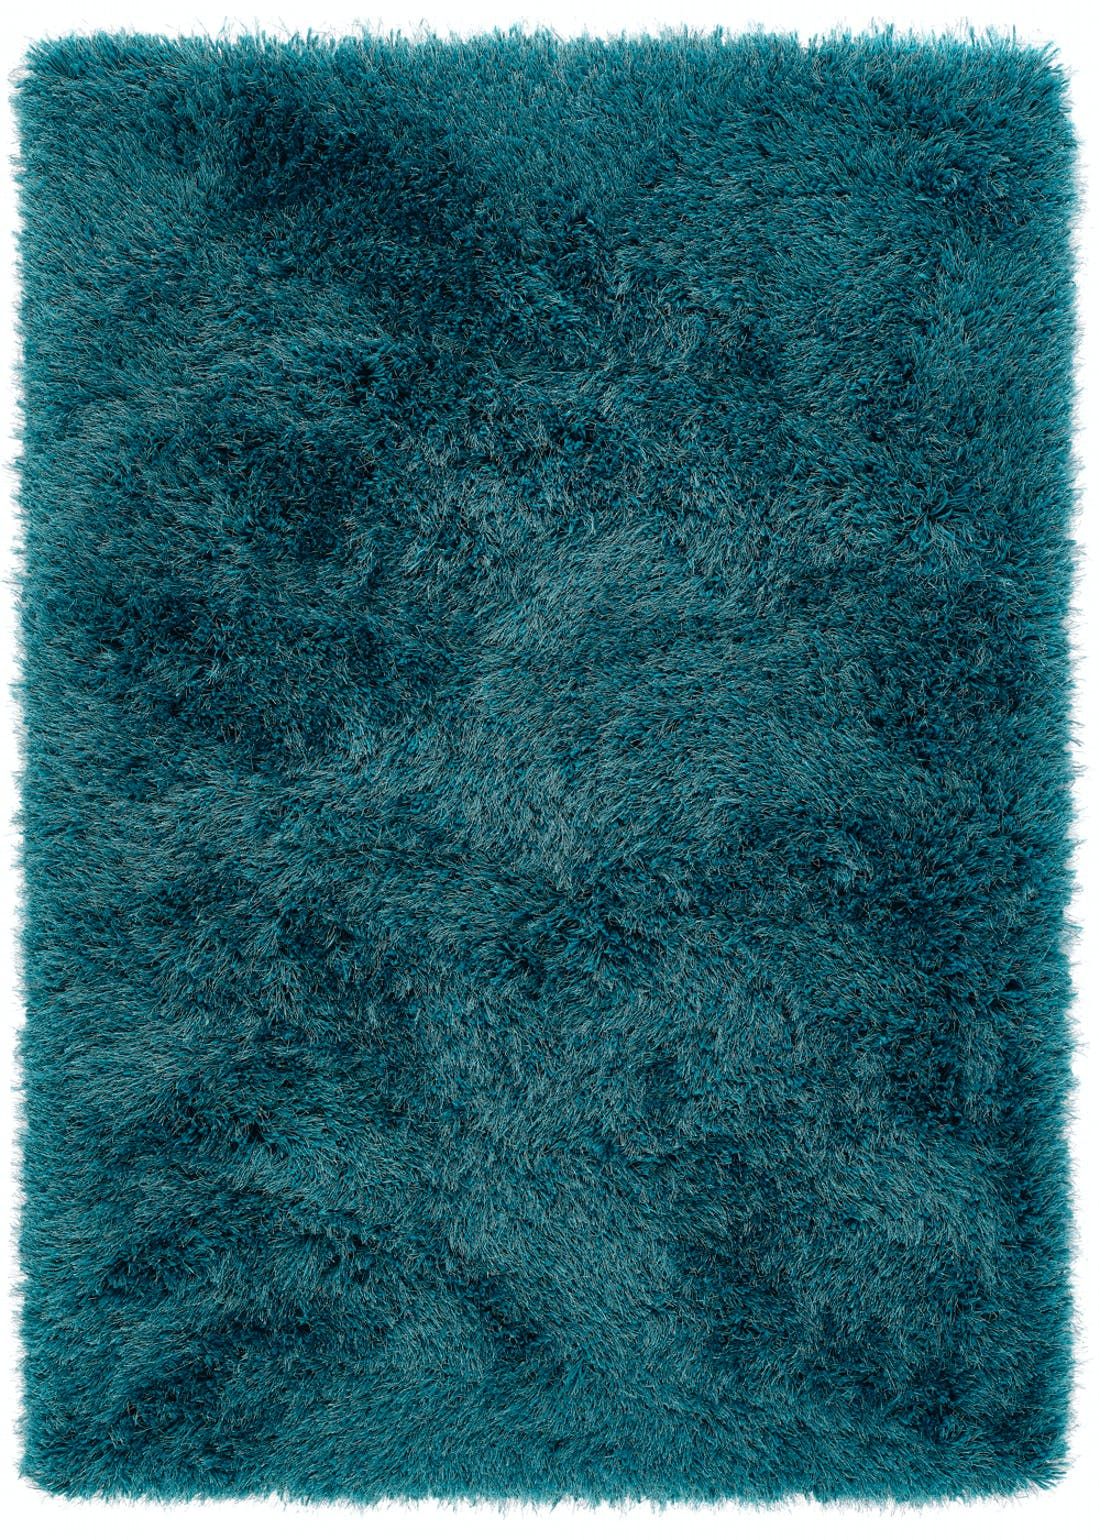 Origins Teal Luxury Rug